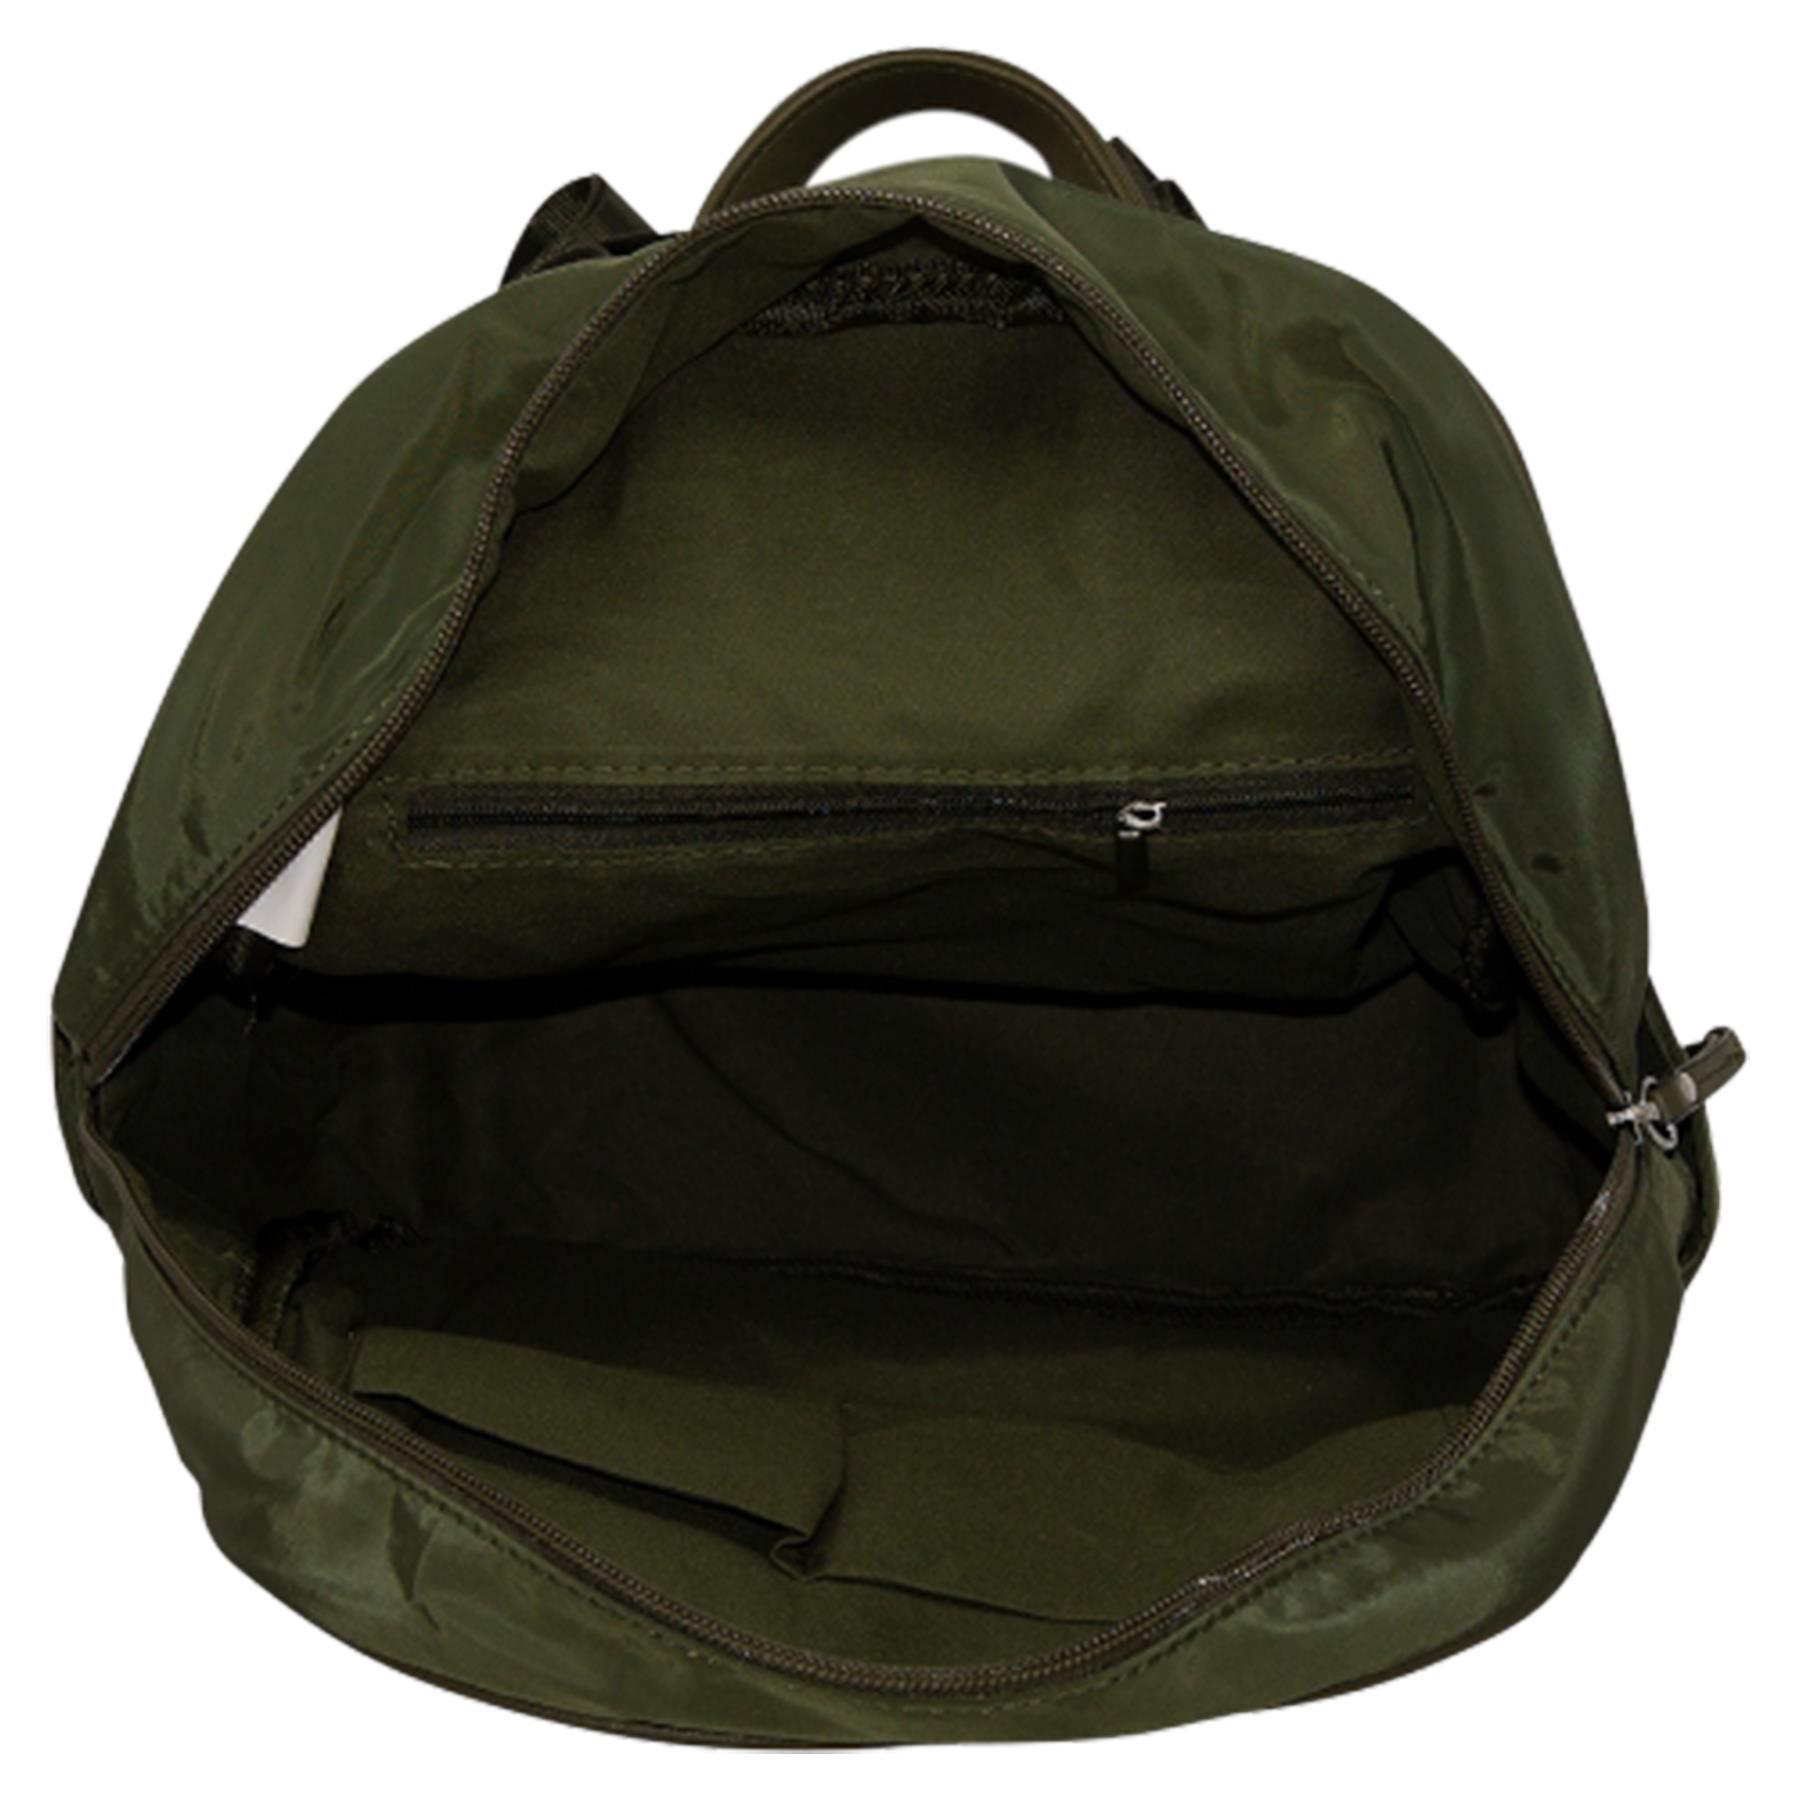 New-Unisex-Plain-Nylon-Showerproof-School-College-Backpack-Rucksack thumbnail 15